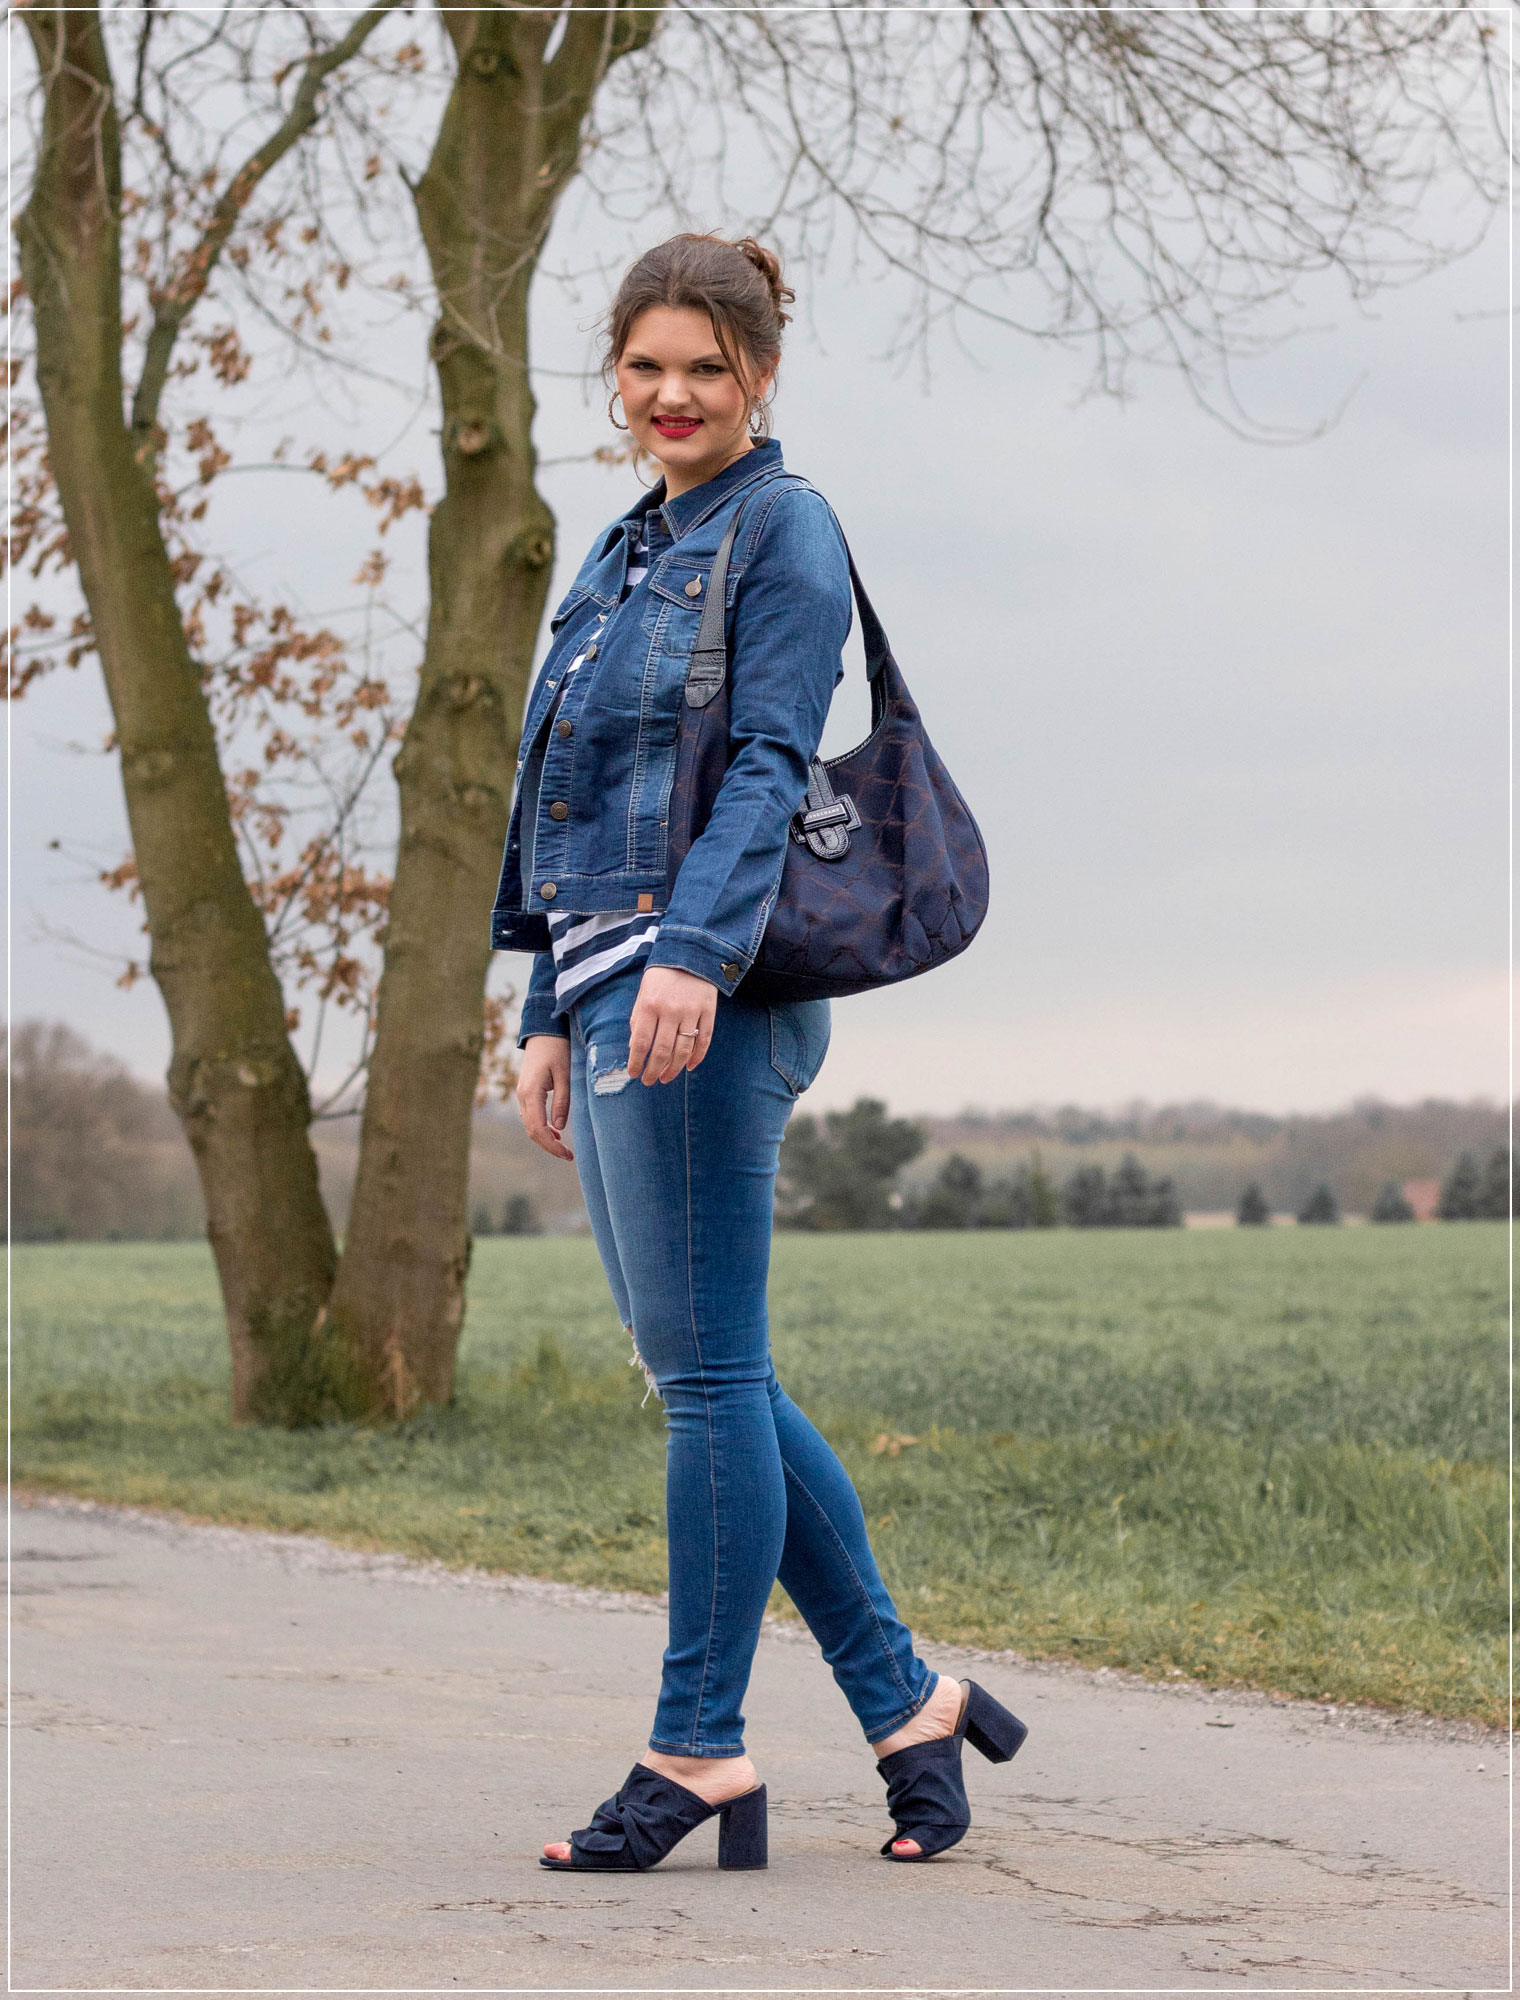 Jeansjacke, Basiclook, Basics, Jeans Fritz, Fruehlingslook, Springstyle, Styleguide, Outfitinspiration, Modebloggerin, Fashionbloggerin, Modeblog, Ruhrgebiet